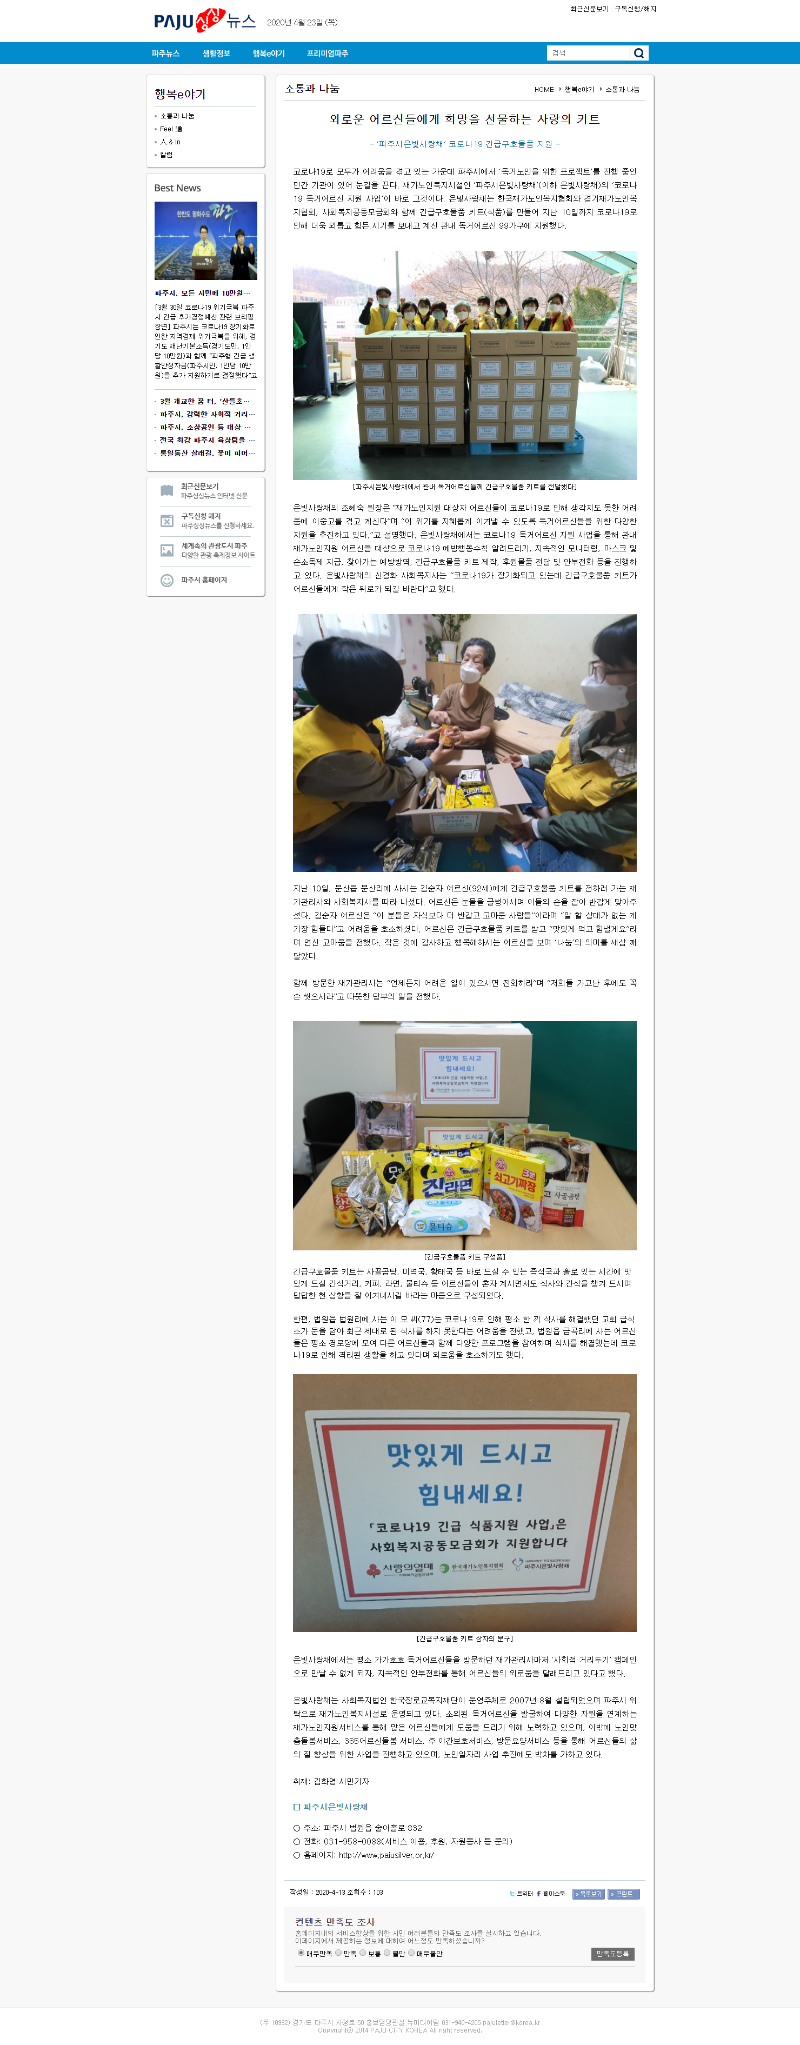 screencapture-news-paju-go-kr-newshome-mtnmain-php-2020-04-23-17_39_14.png